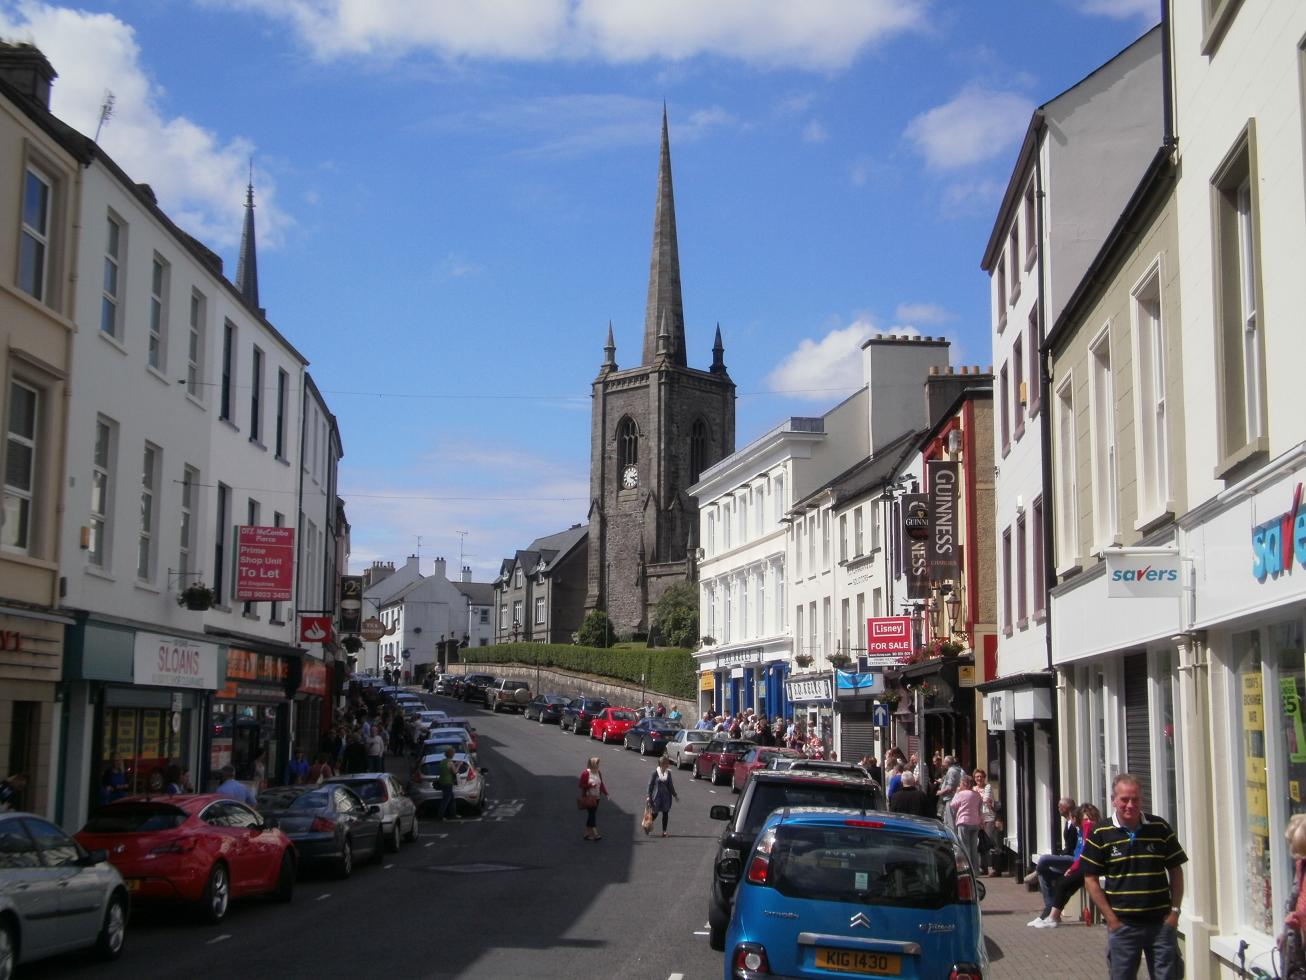 The town center of Enniskillen.